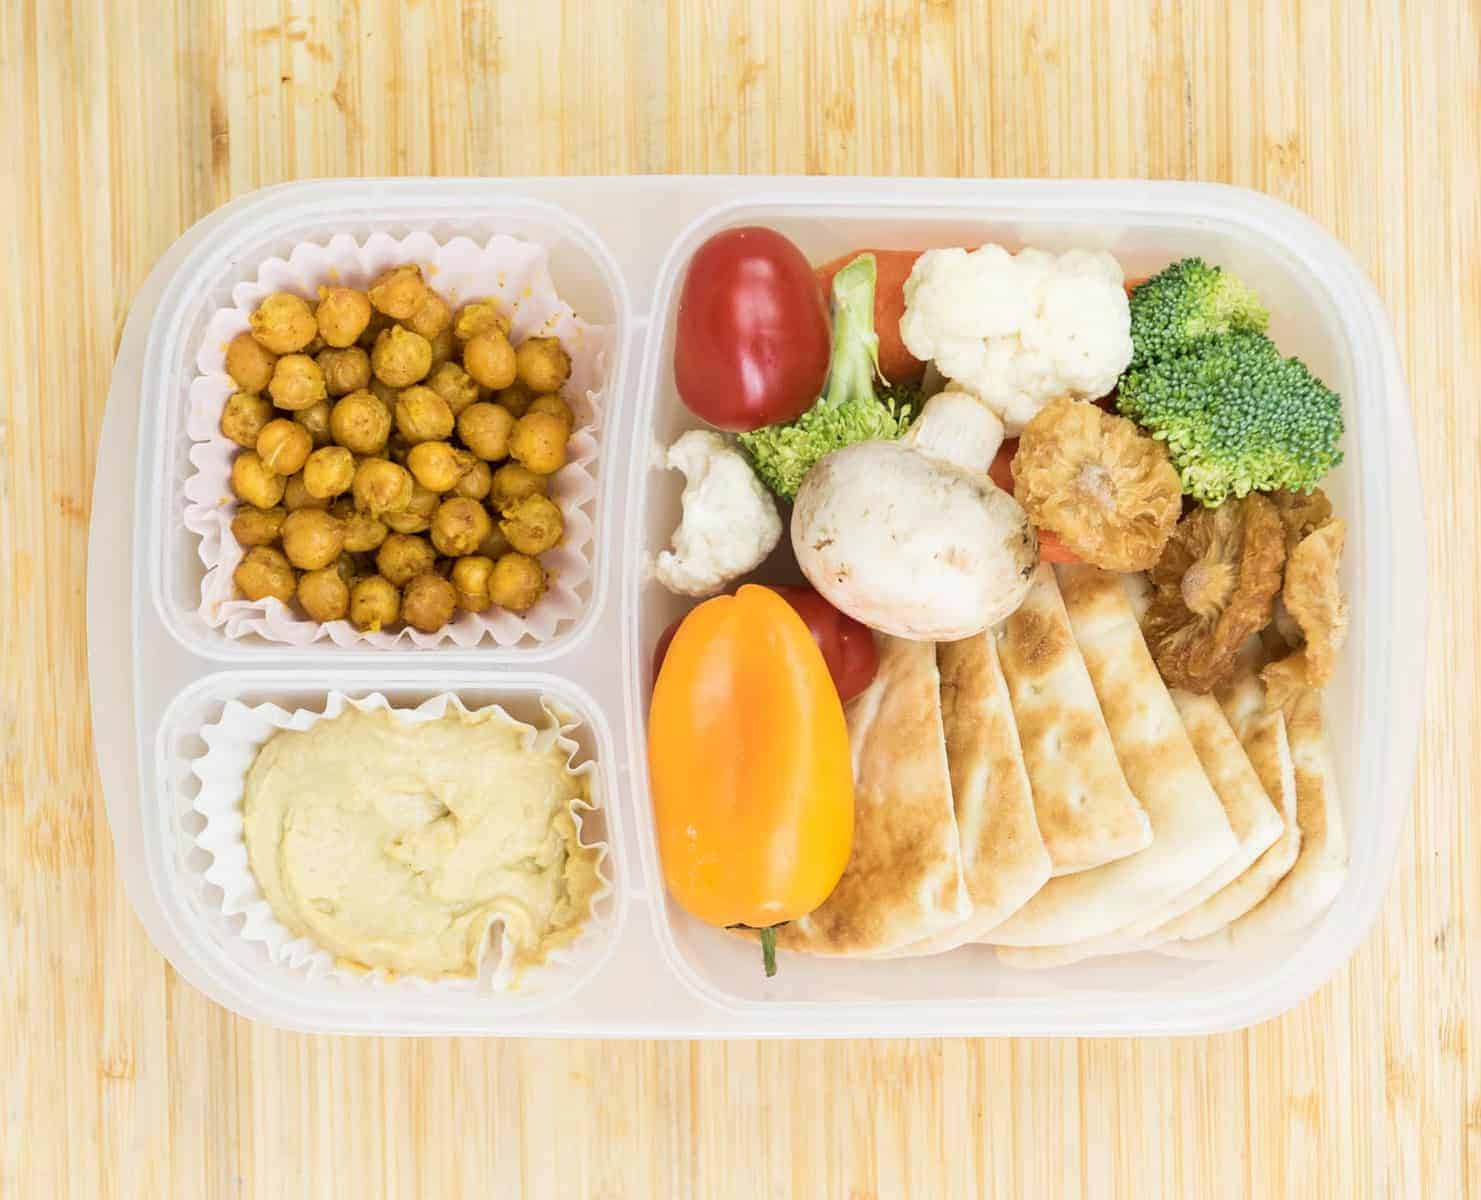 Lunch Box Ideas - Hummus Lunch Box